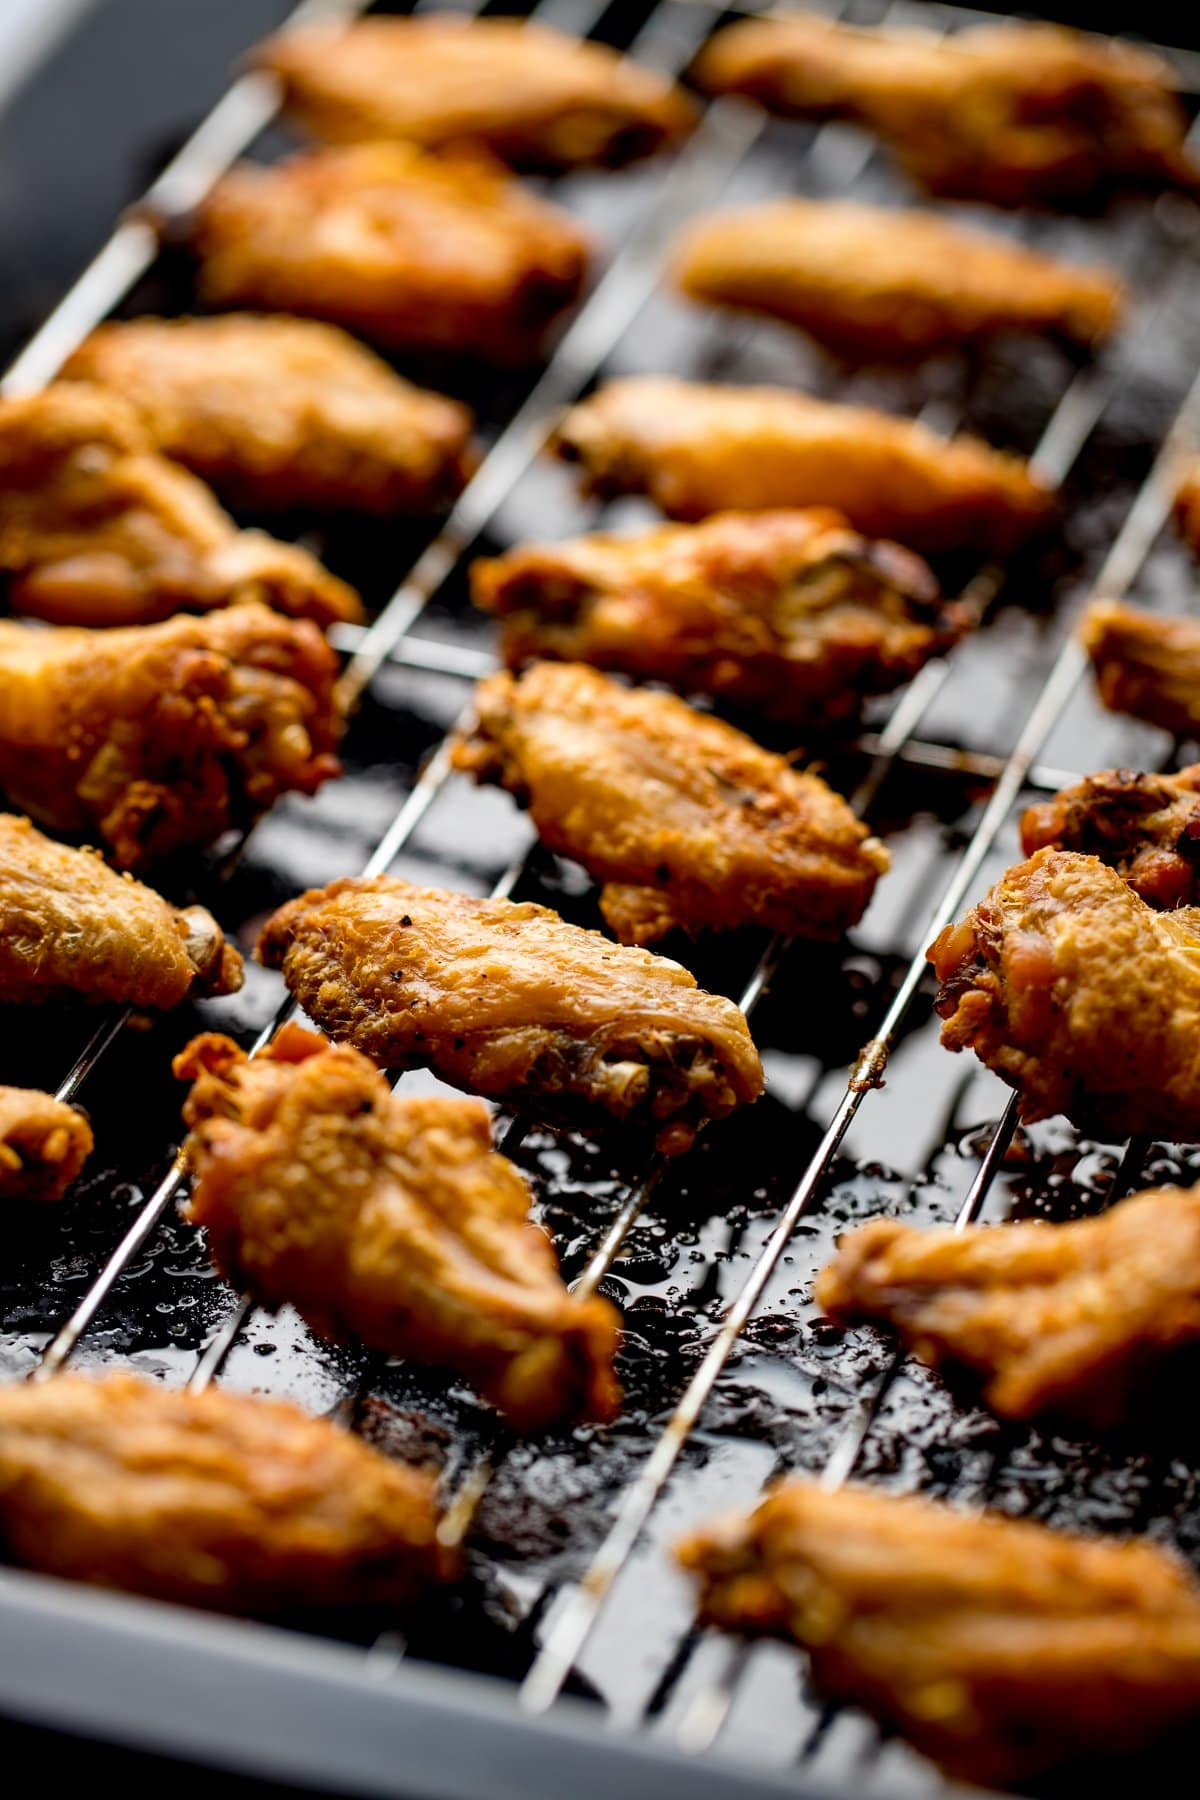 Cooked crispy chicken wings on a wire rack over a dark tray.